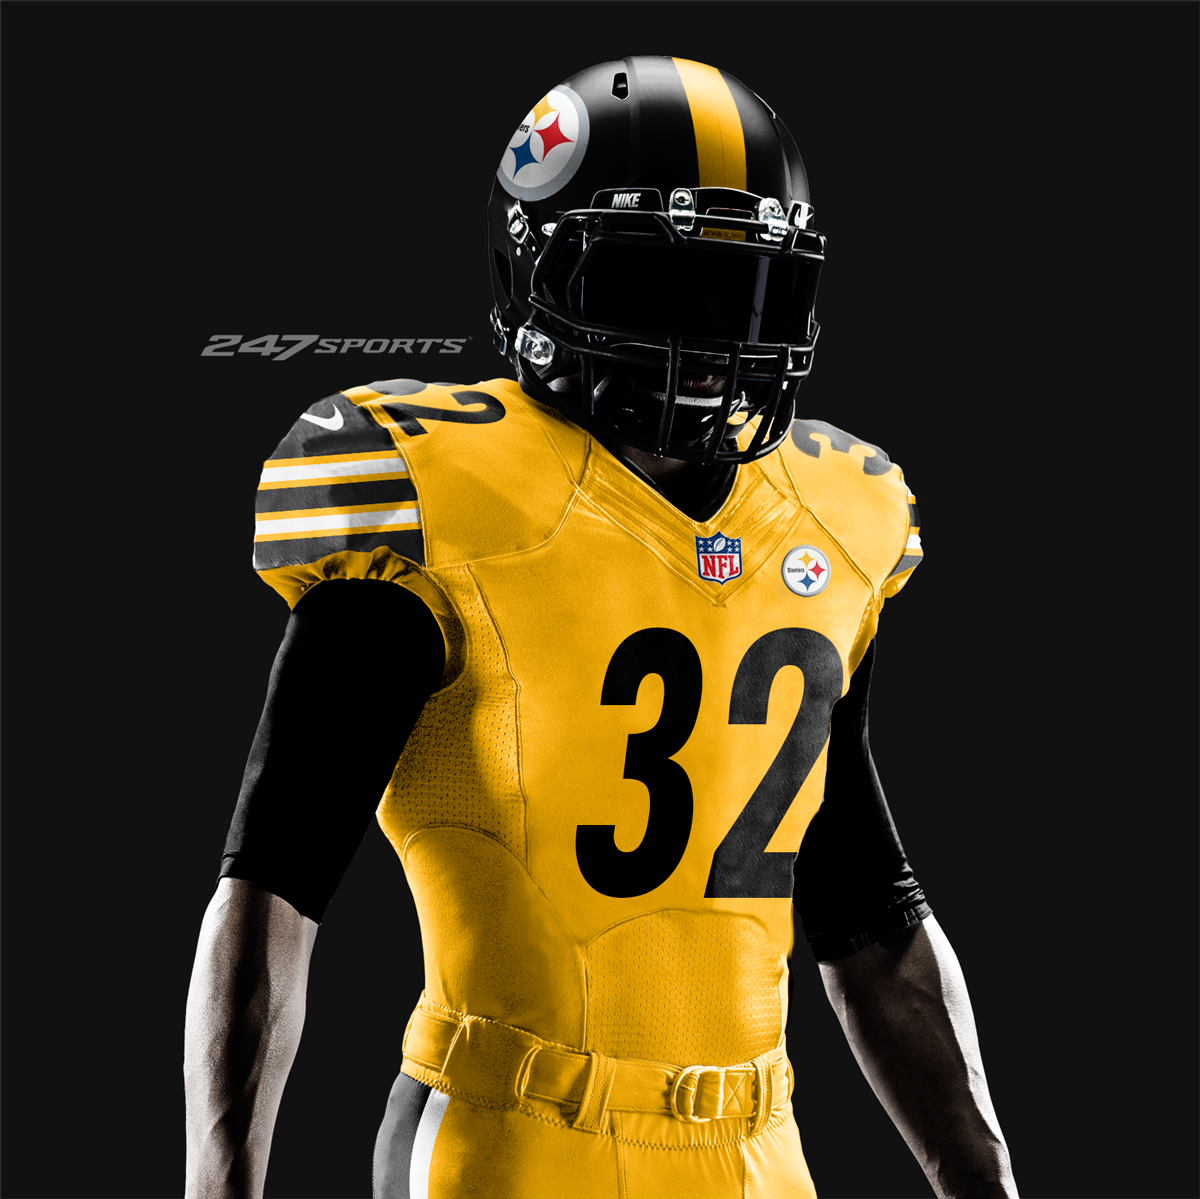 steelers all gold jersey